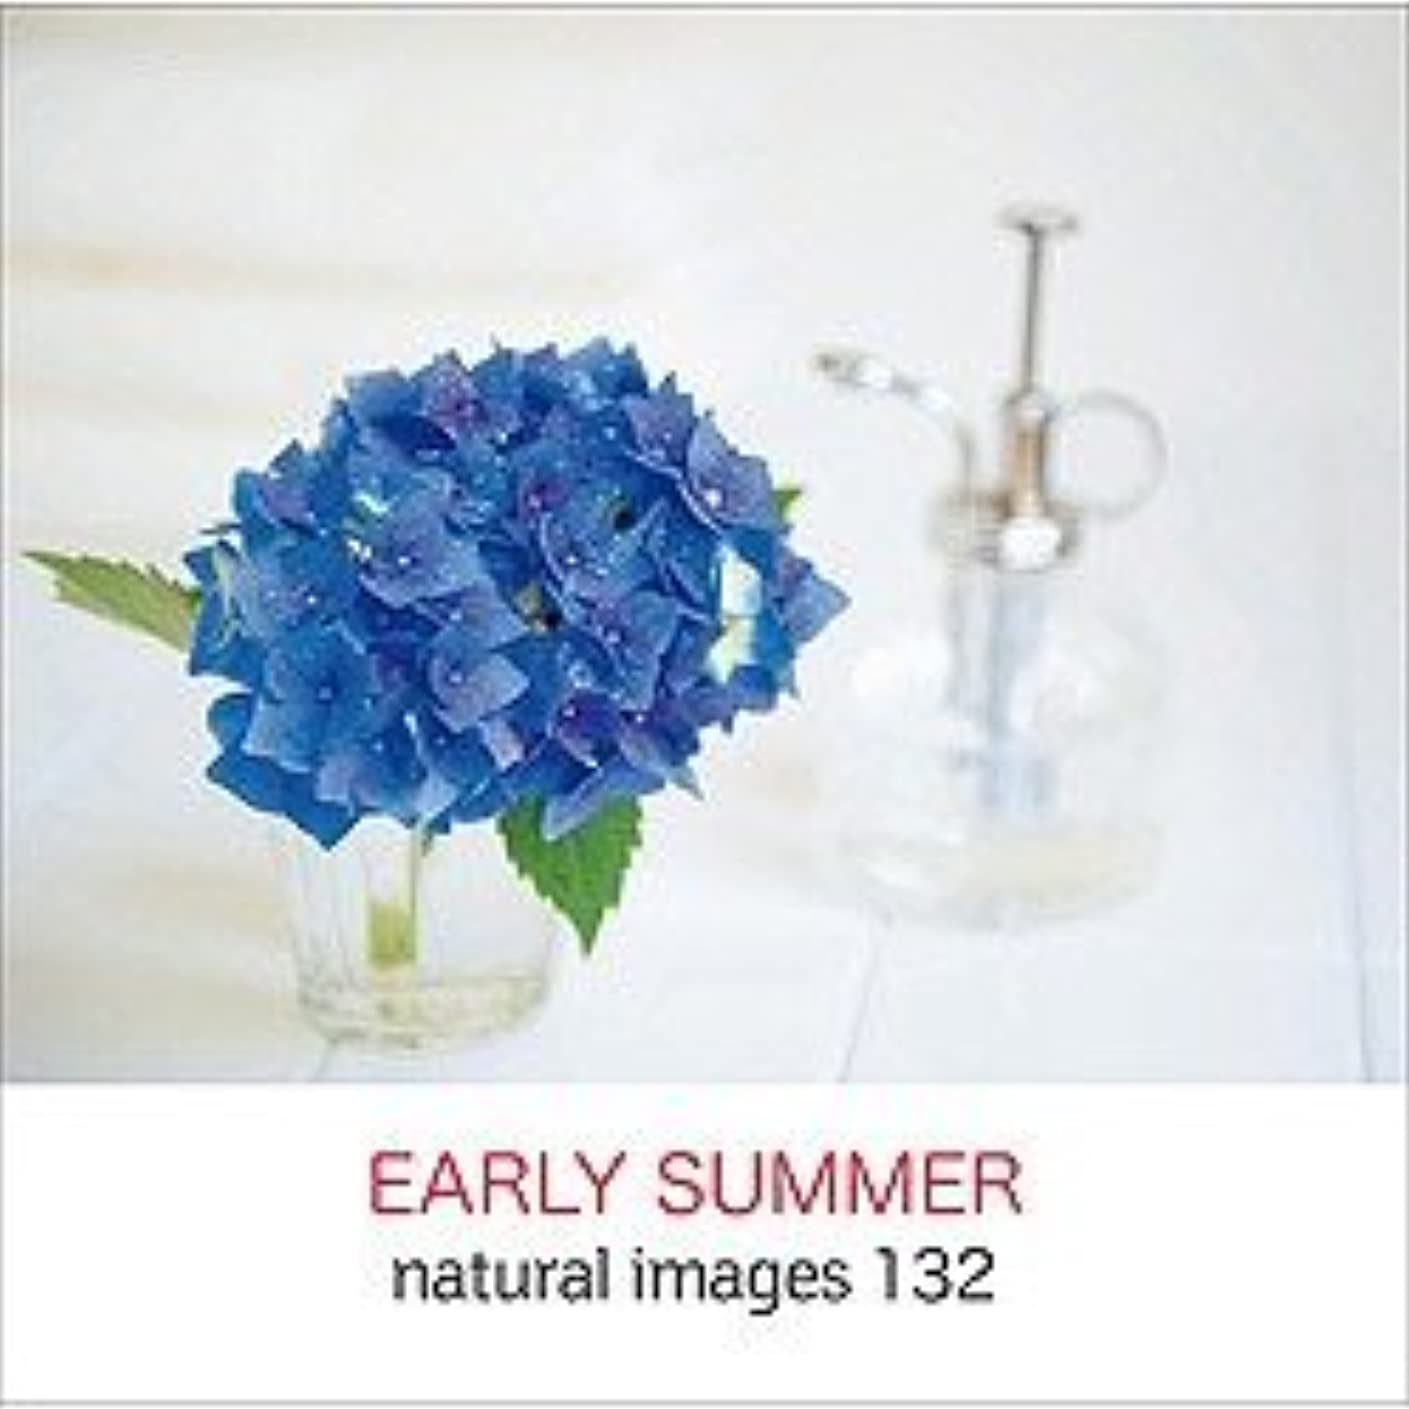 naturalimages Vol.132 EARLY SUMMER